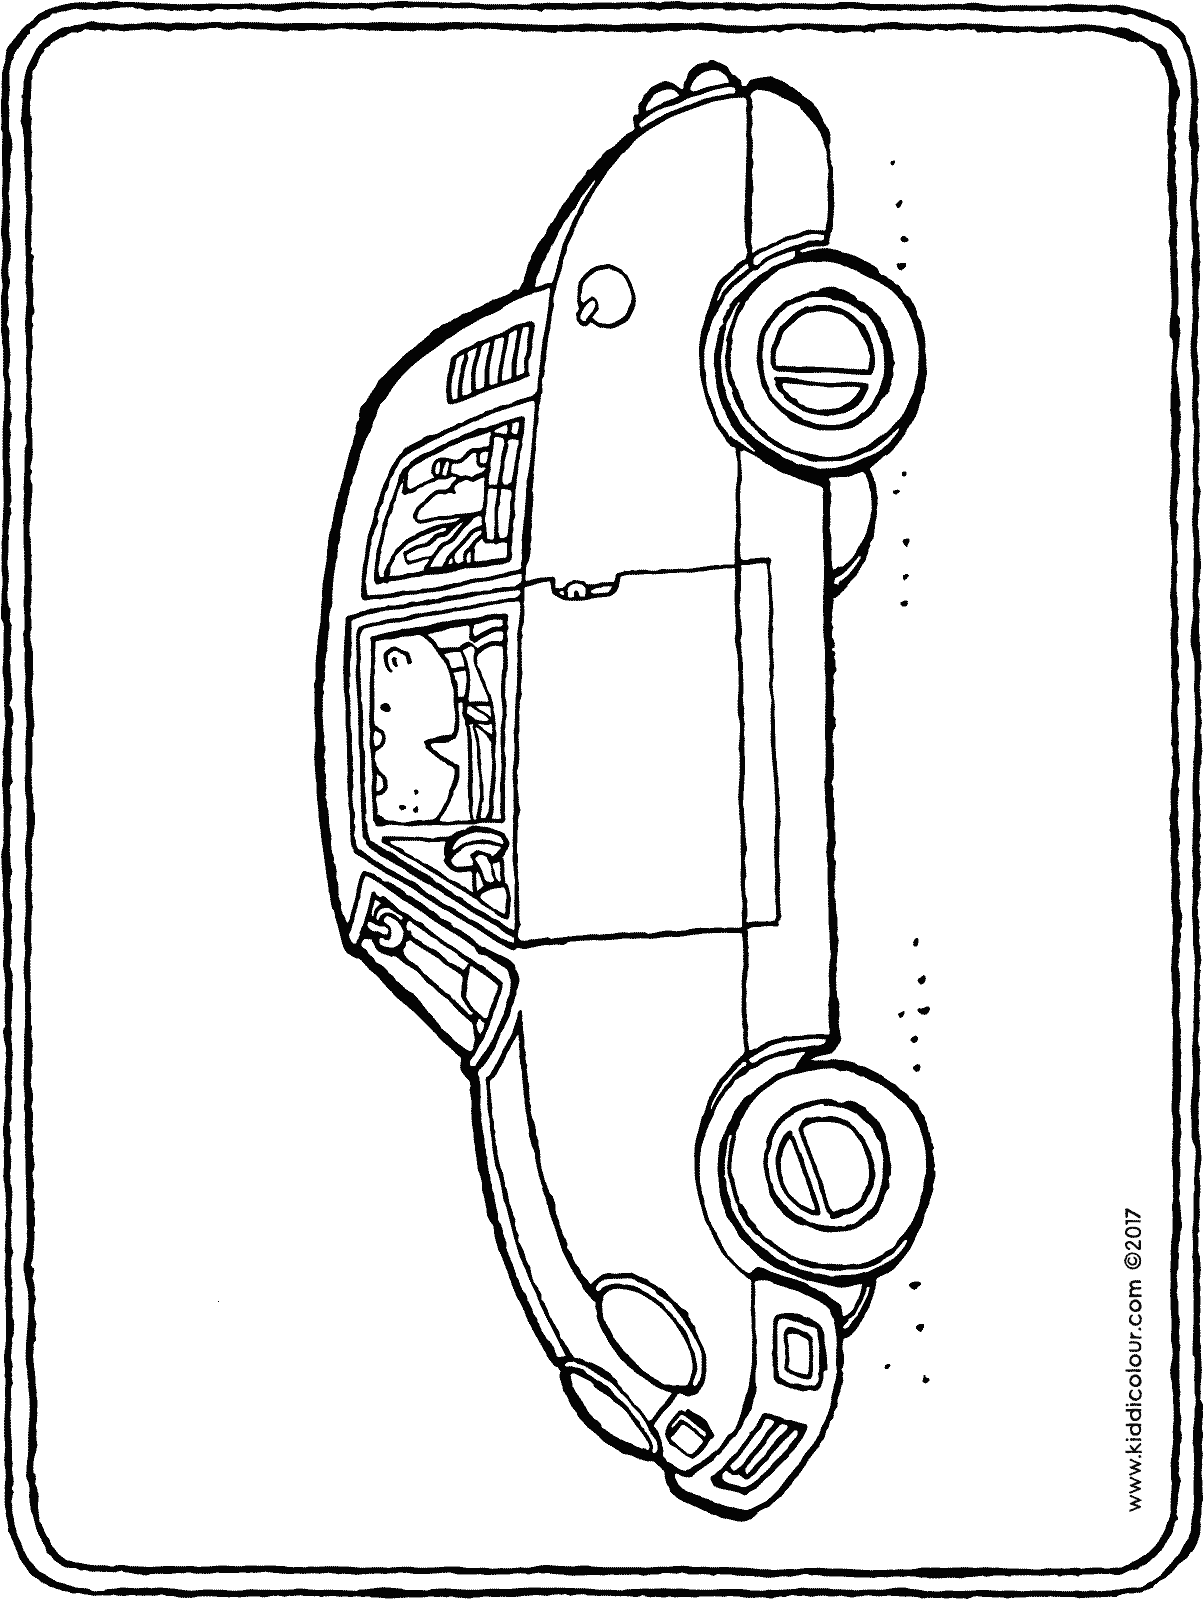 car with groceries colouring page drawing picture 01H